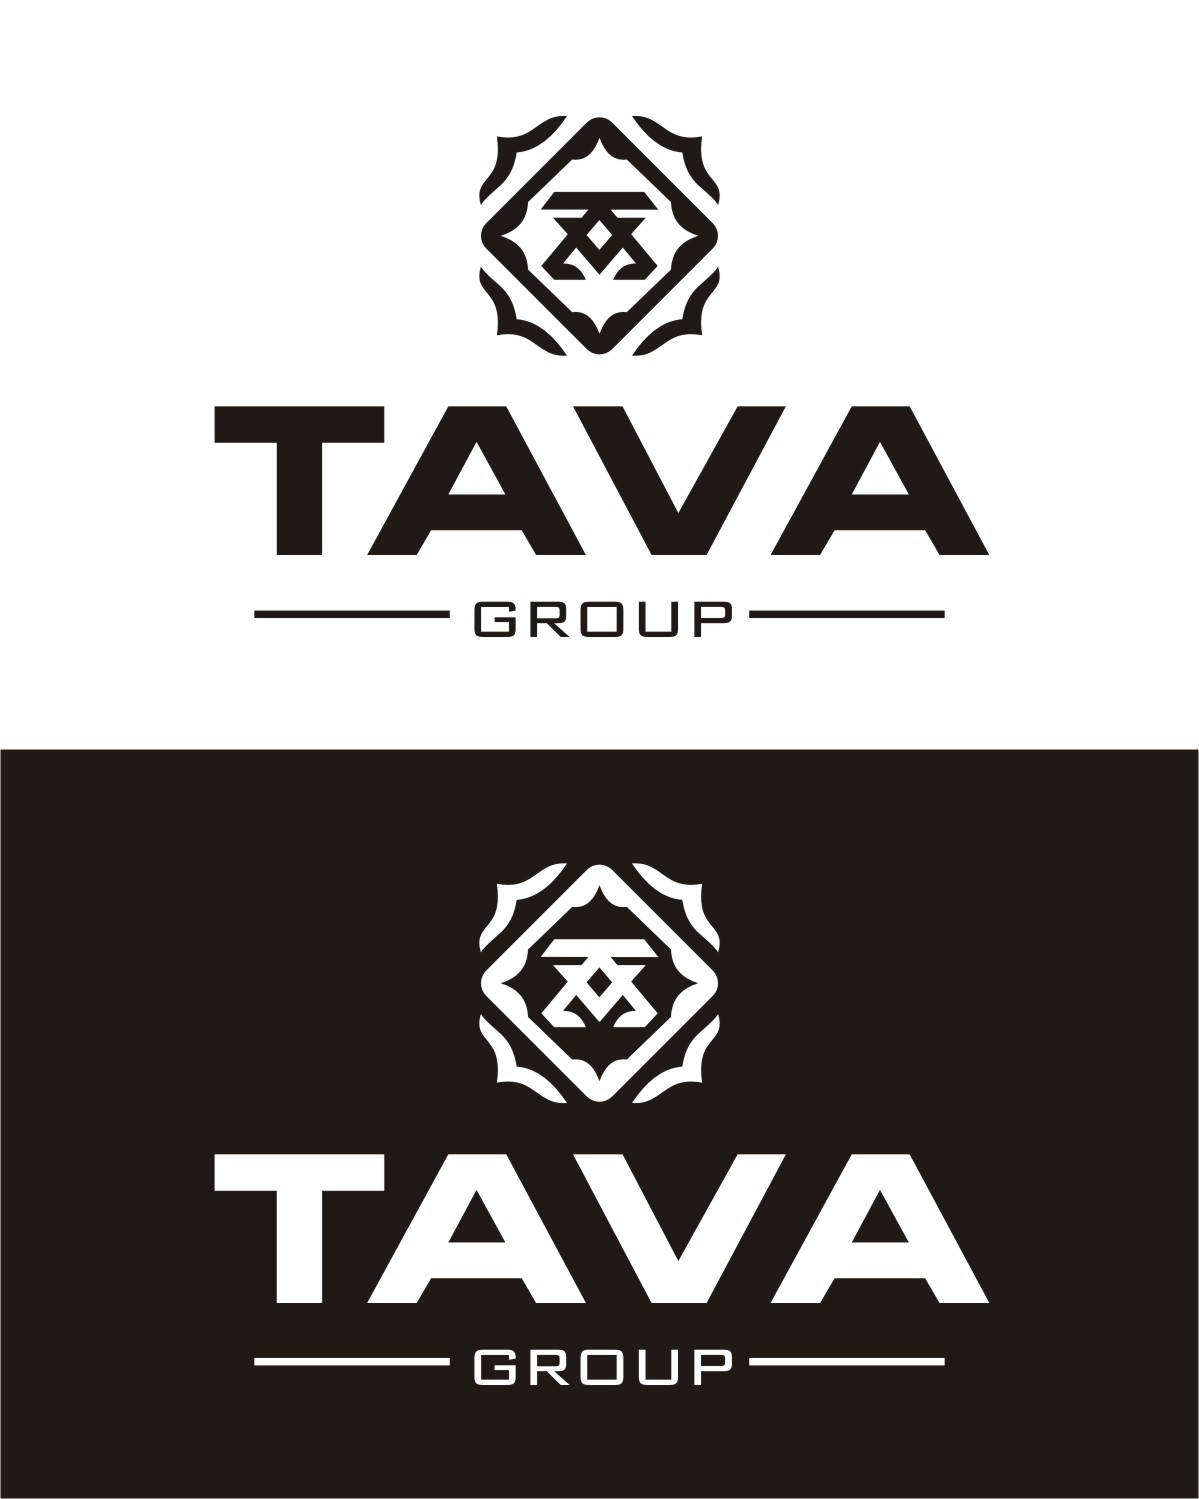 Logo Design by Spider Graphics - Entry No. 171 in the Logo Design Contest Creative Logo Design for Tava Group.